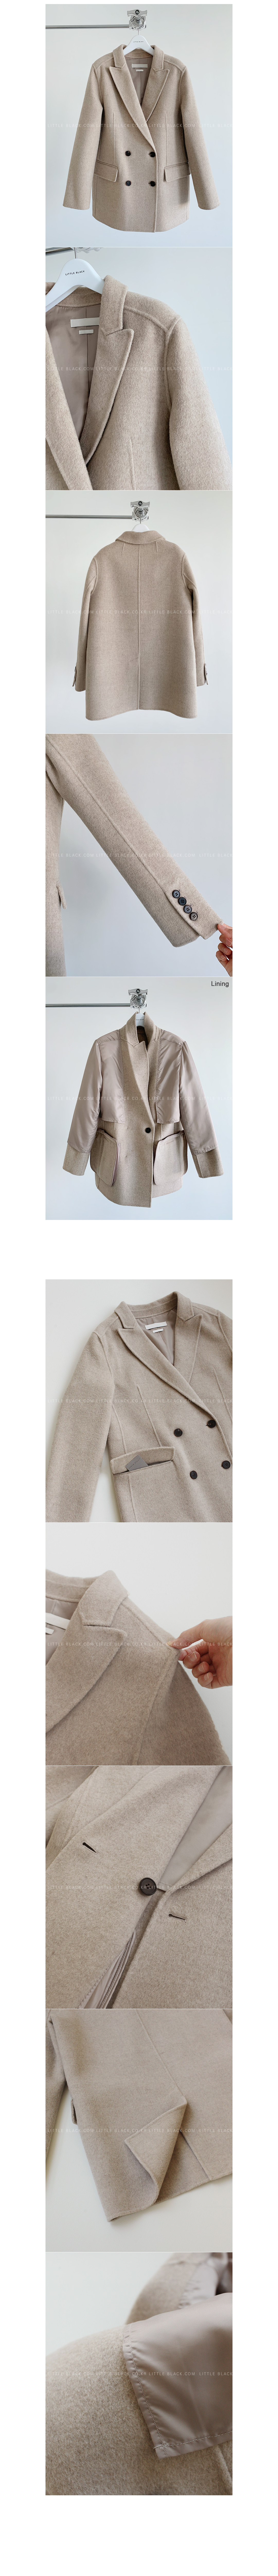 Princess Seam Notched Lapel Blazer|